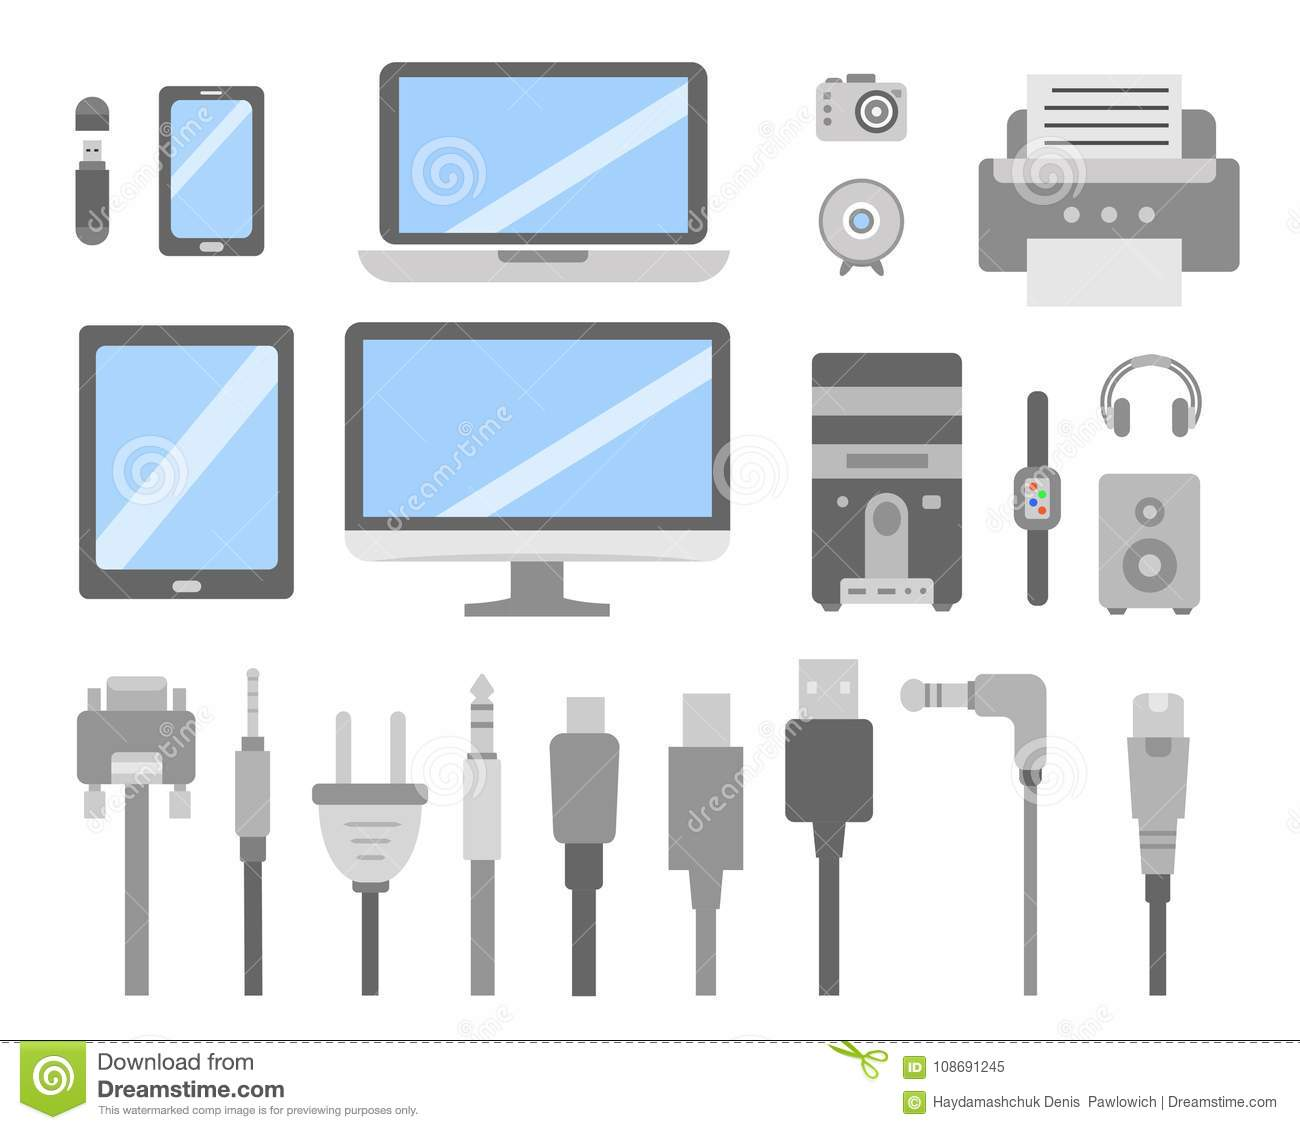 Vector Set Of PC Gadgets And Devices Flat Icons. Cable Wire Computer And  Electricity Plug Collection. Stock Vector - Illustration of electronic,  illustration: 108691245Dreamstime.com